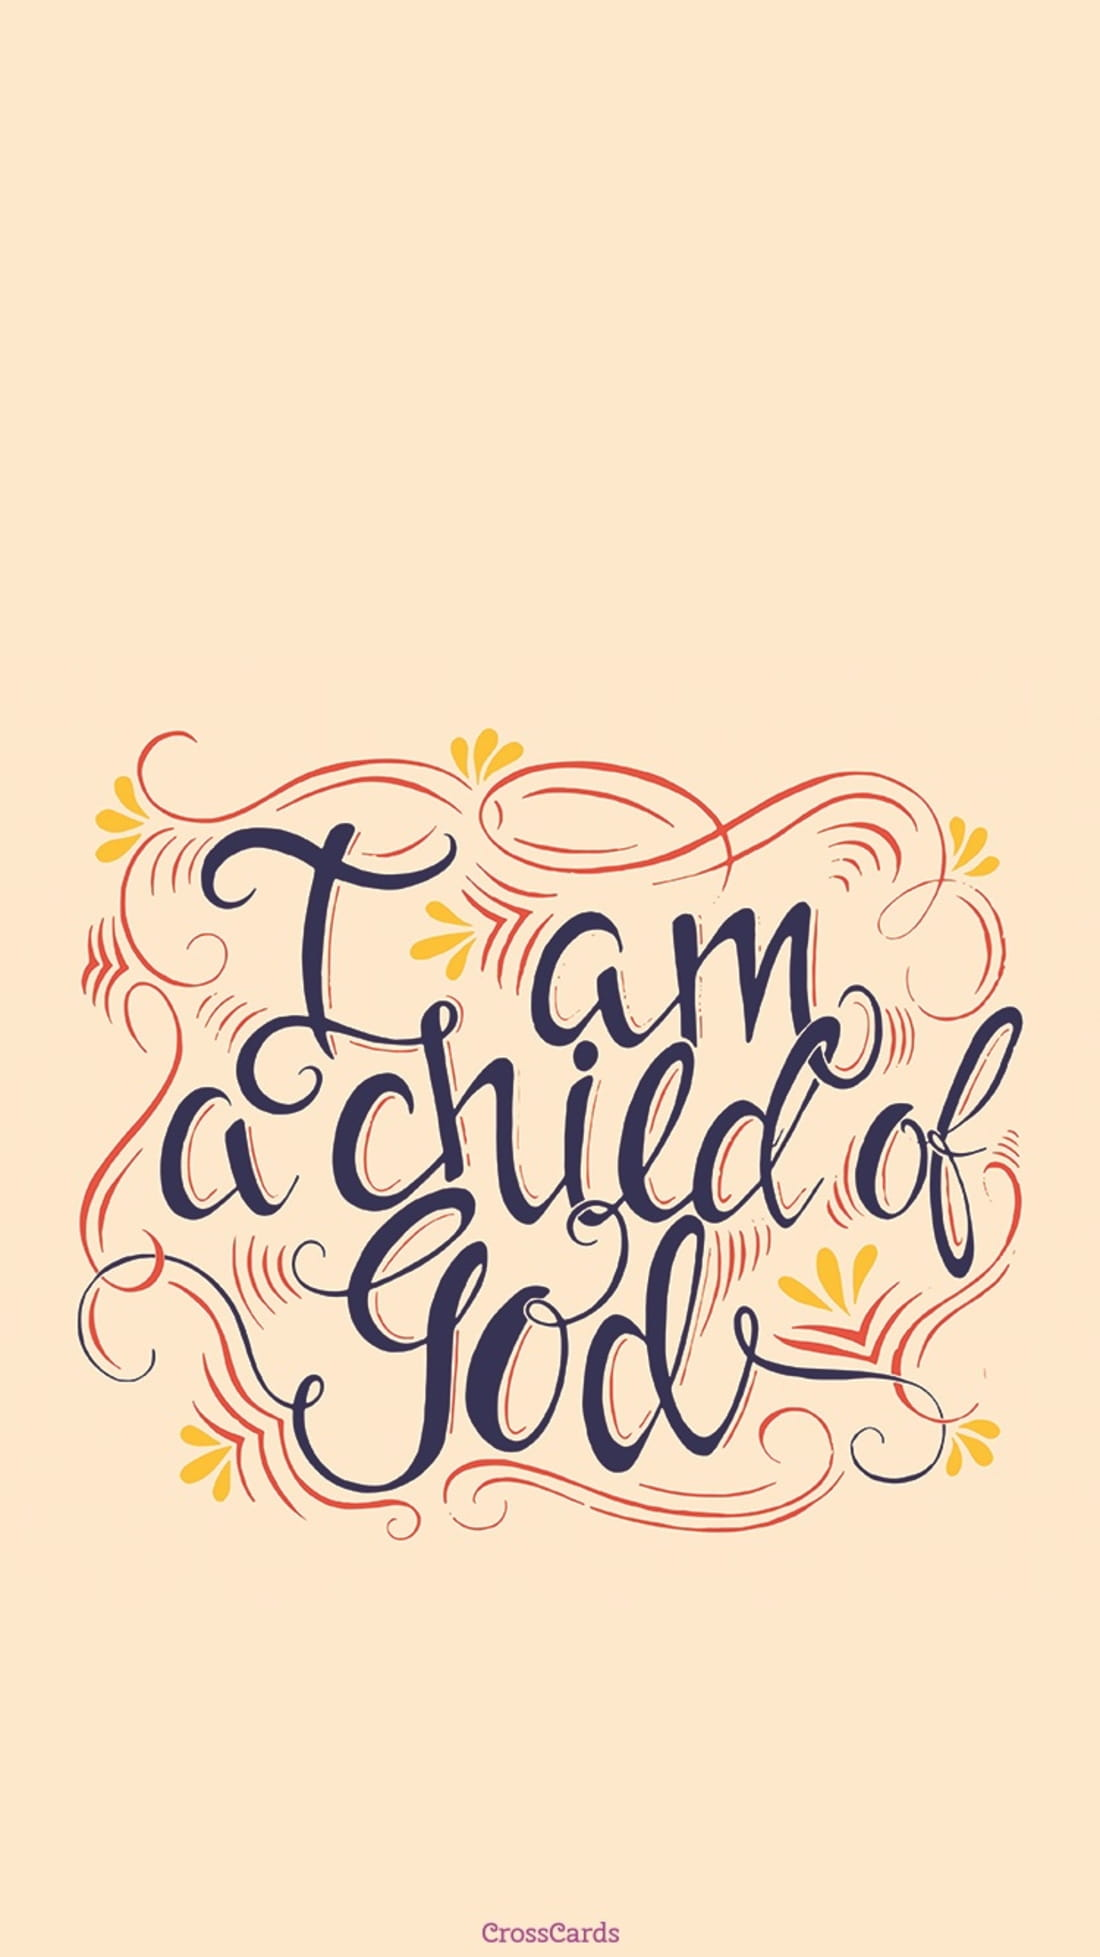 Wallpaper download in phone - Child Of God